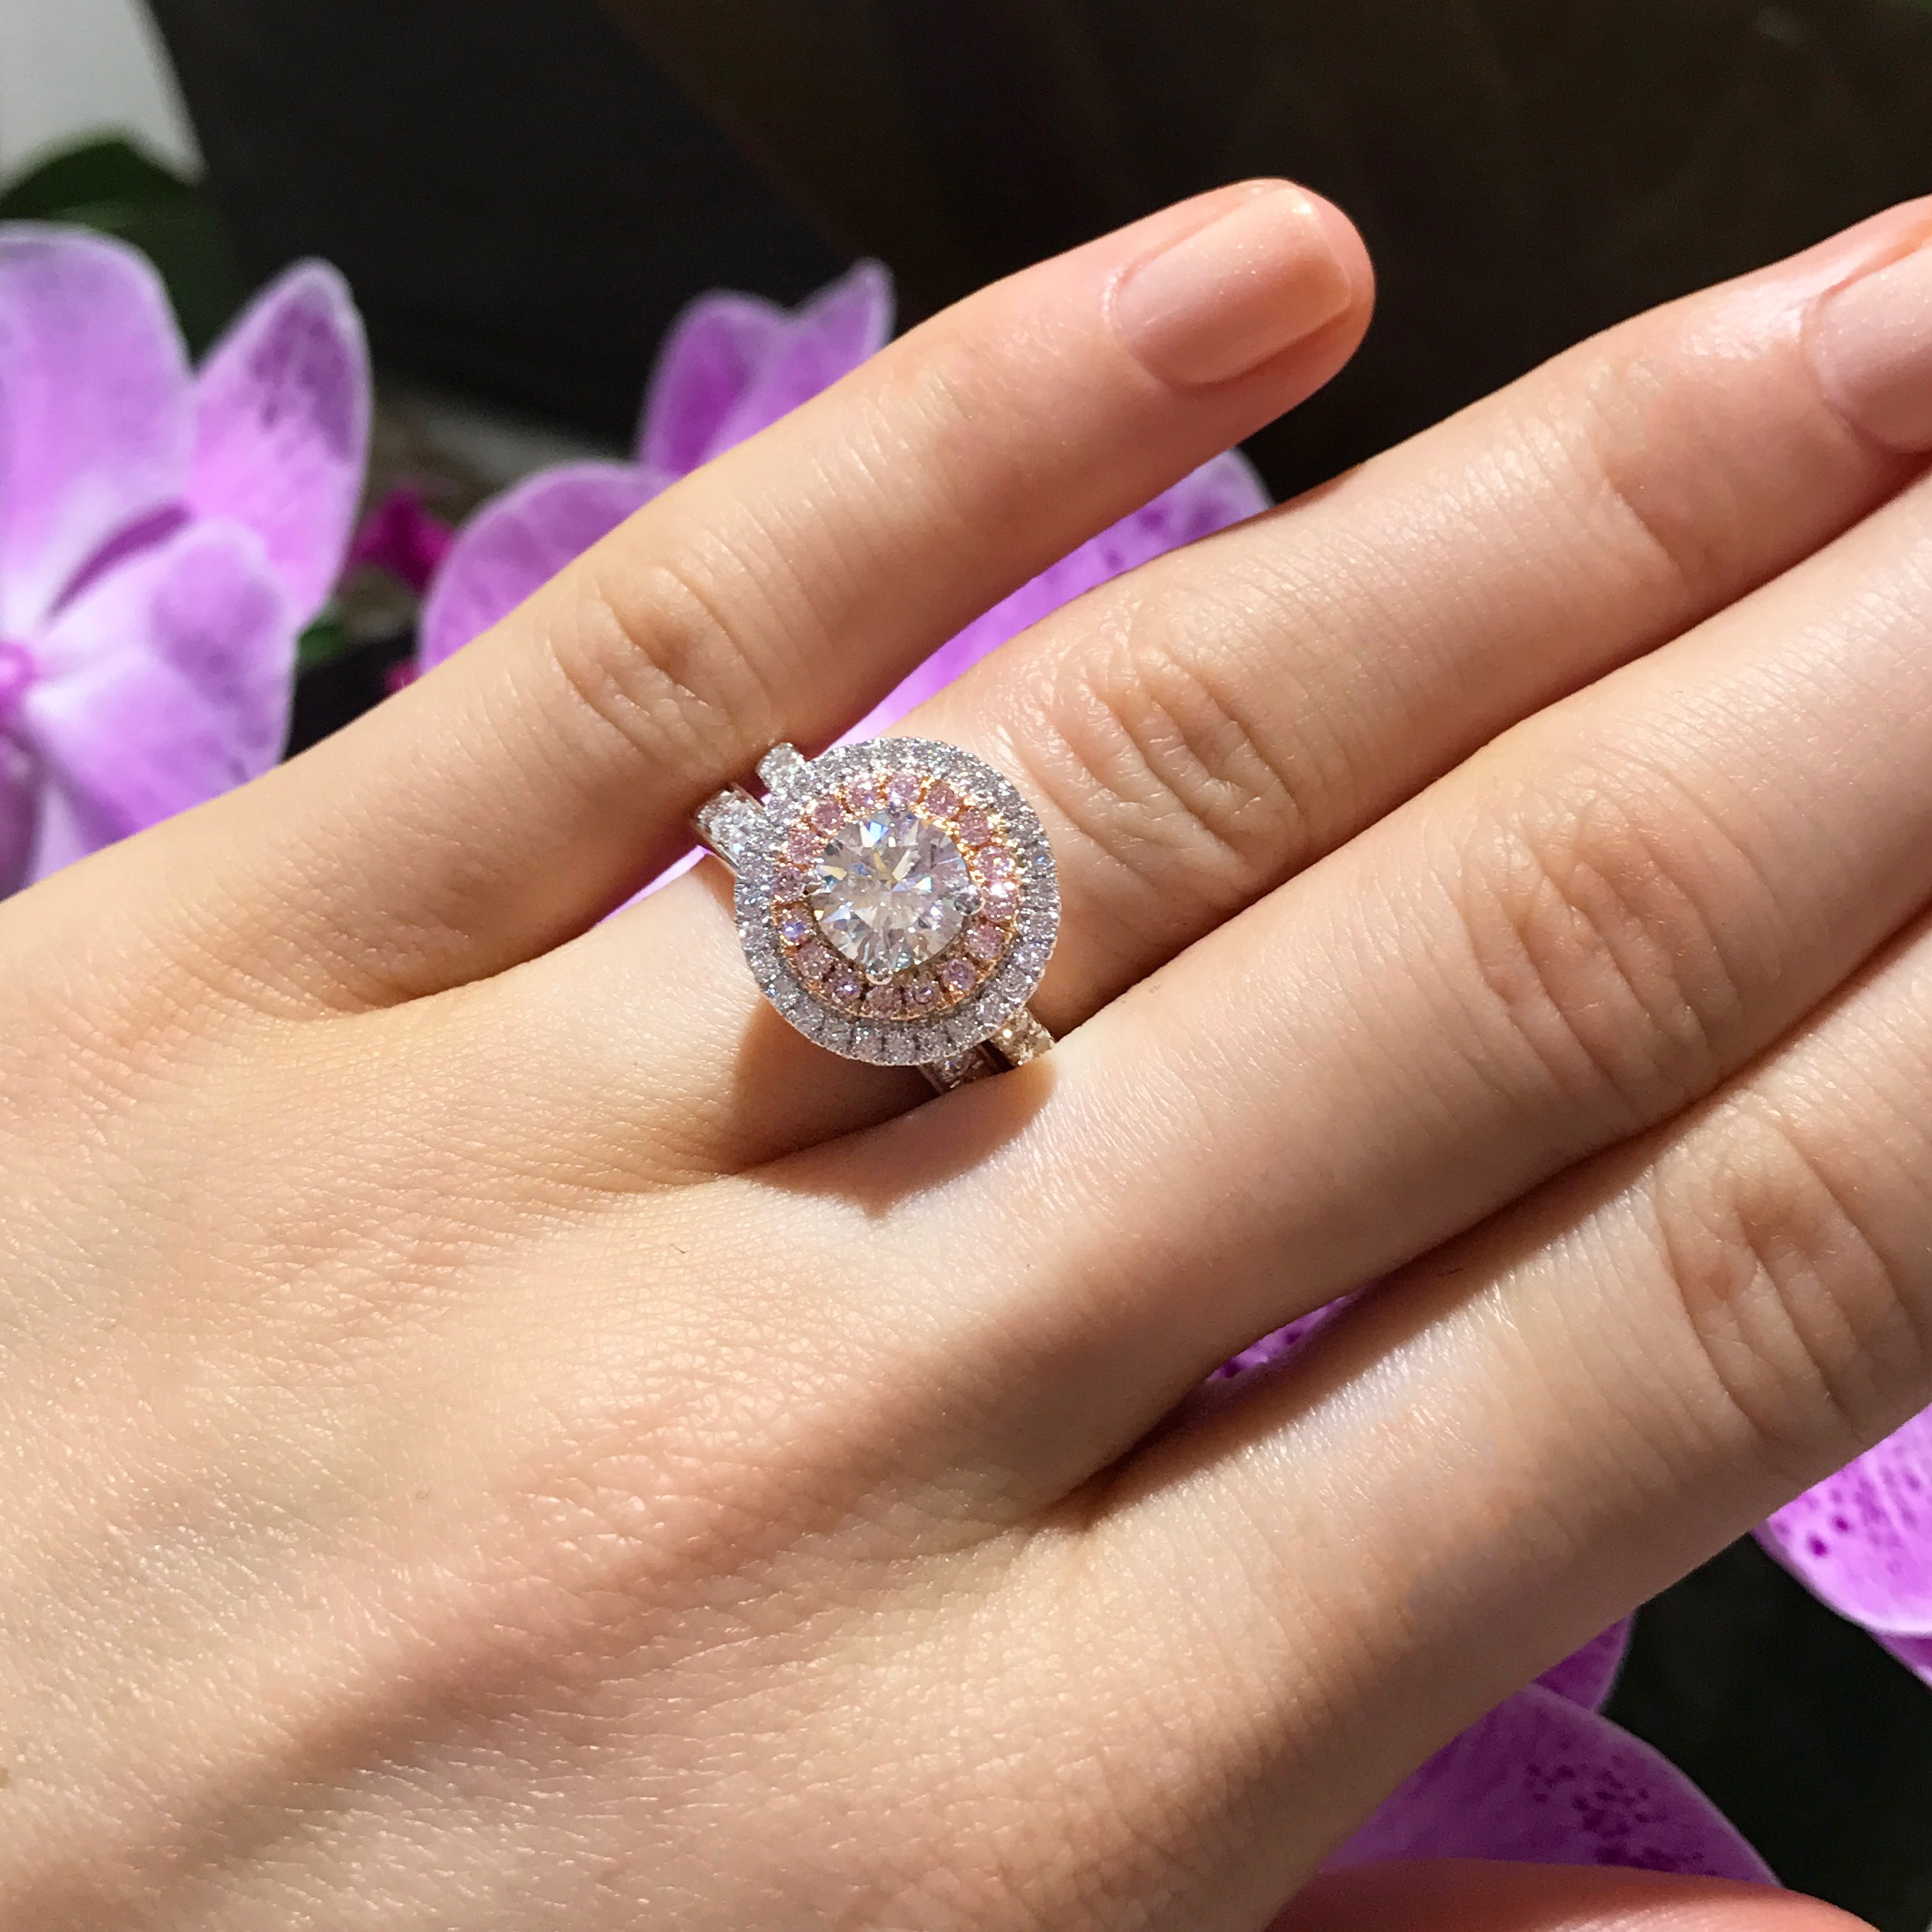 Mathew_Ely_Jewellery_Modern_Brides_Engagement_Ring_Slider4-5.jpg